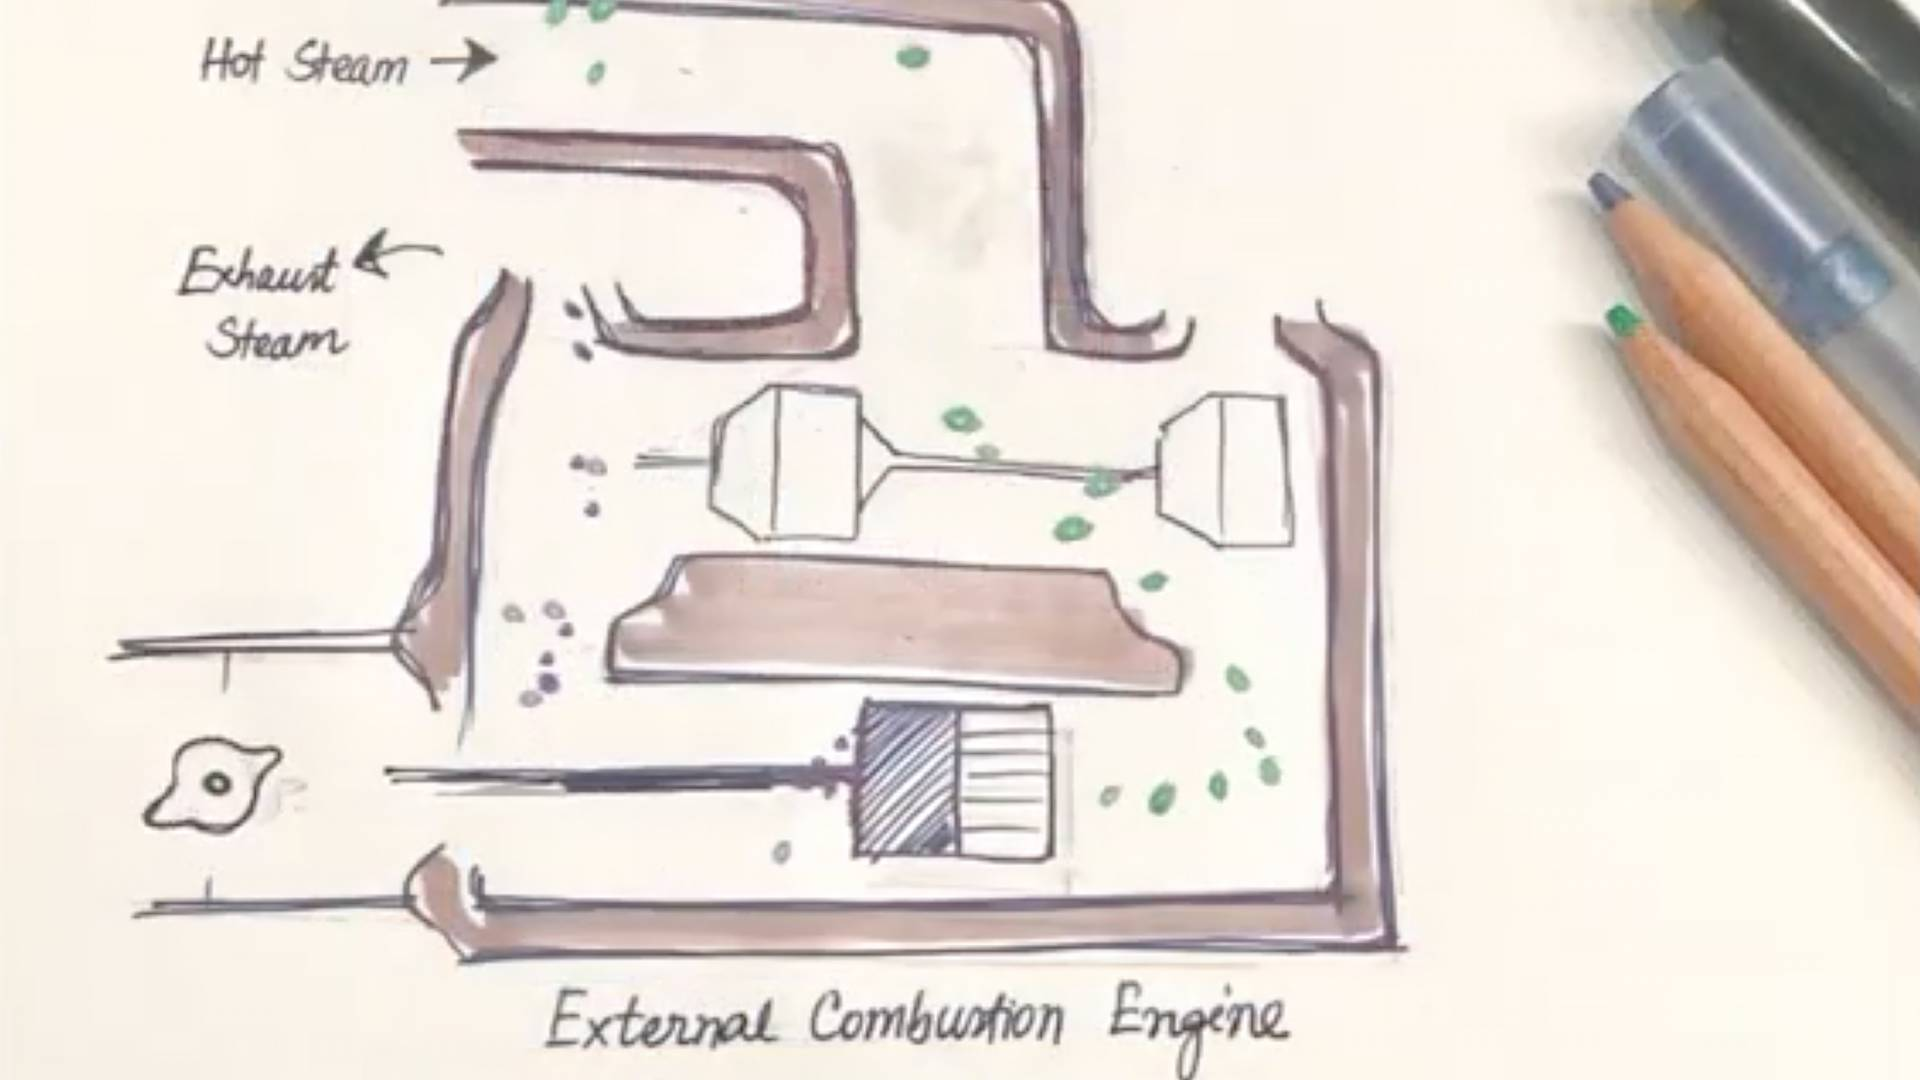 Drawing of an External Combustion Engine